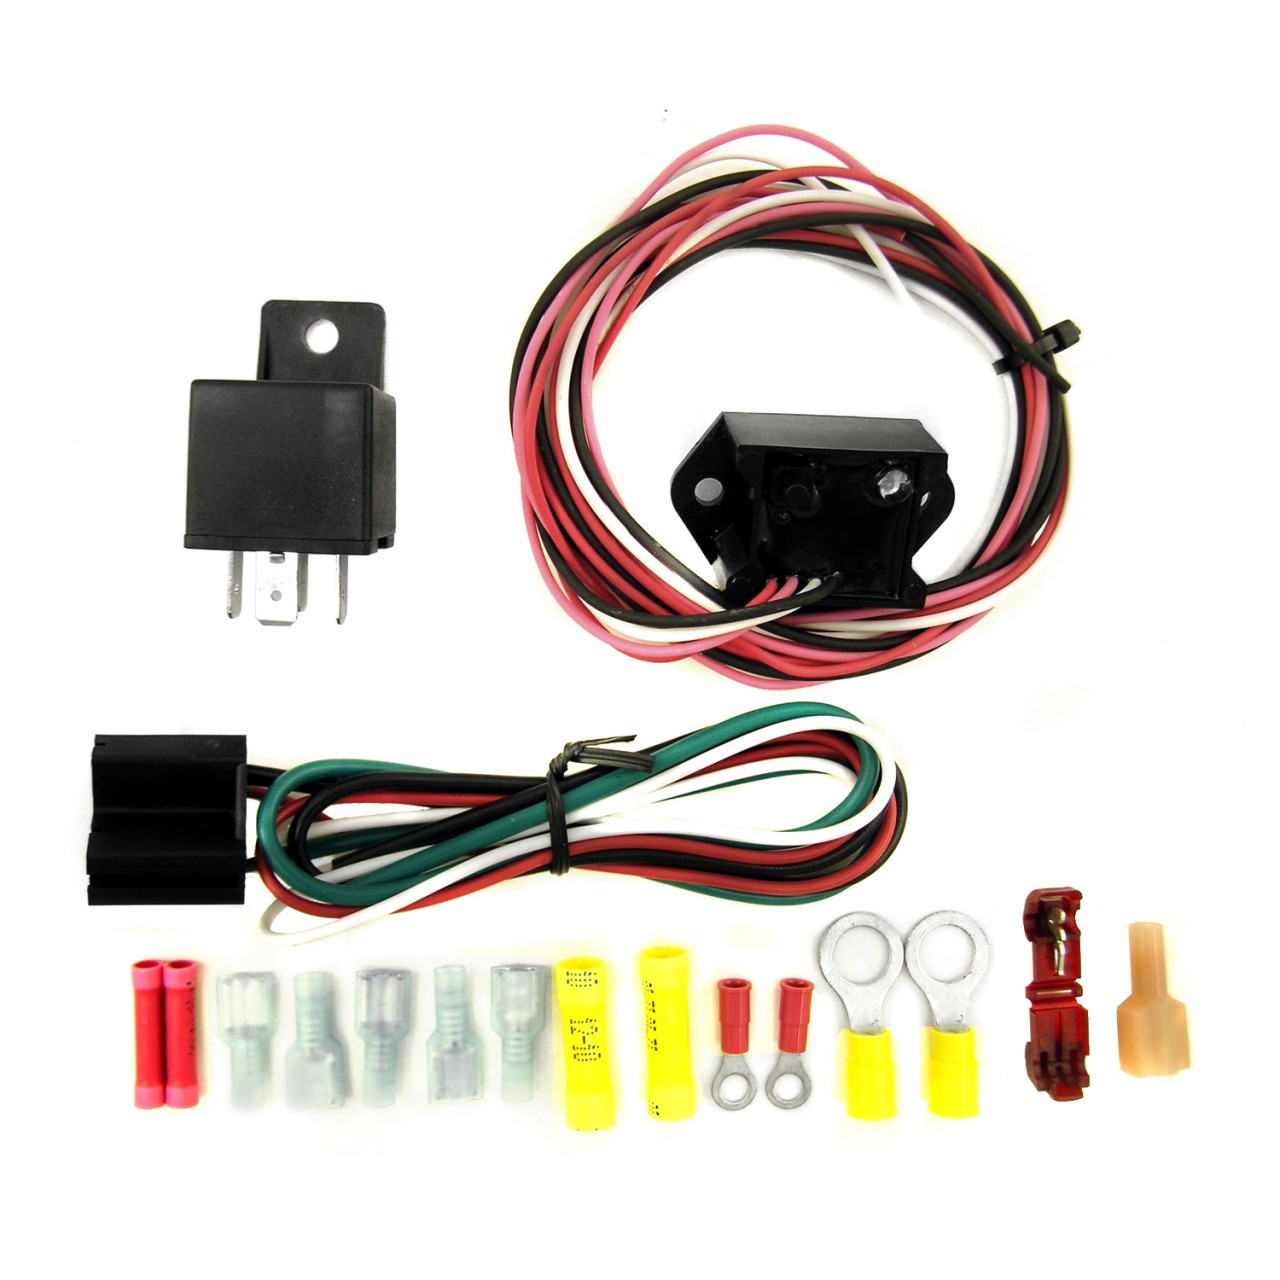 15961P__61156.1350669572?c=2 tps wide open throttle (wot) switch TPS Adapter Wire at crackthecode.co